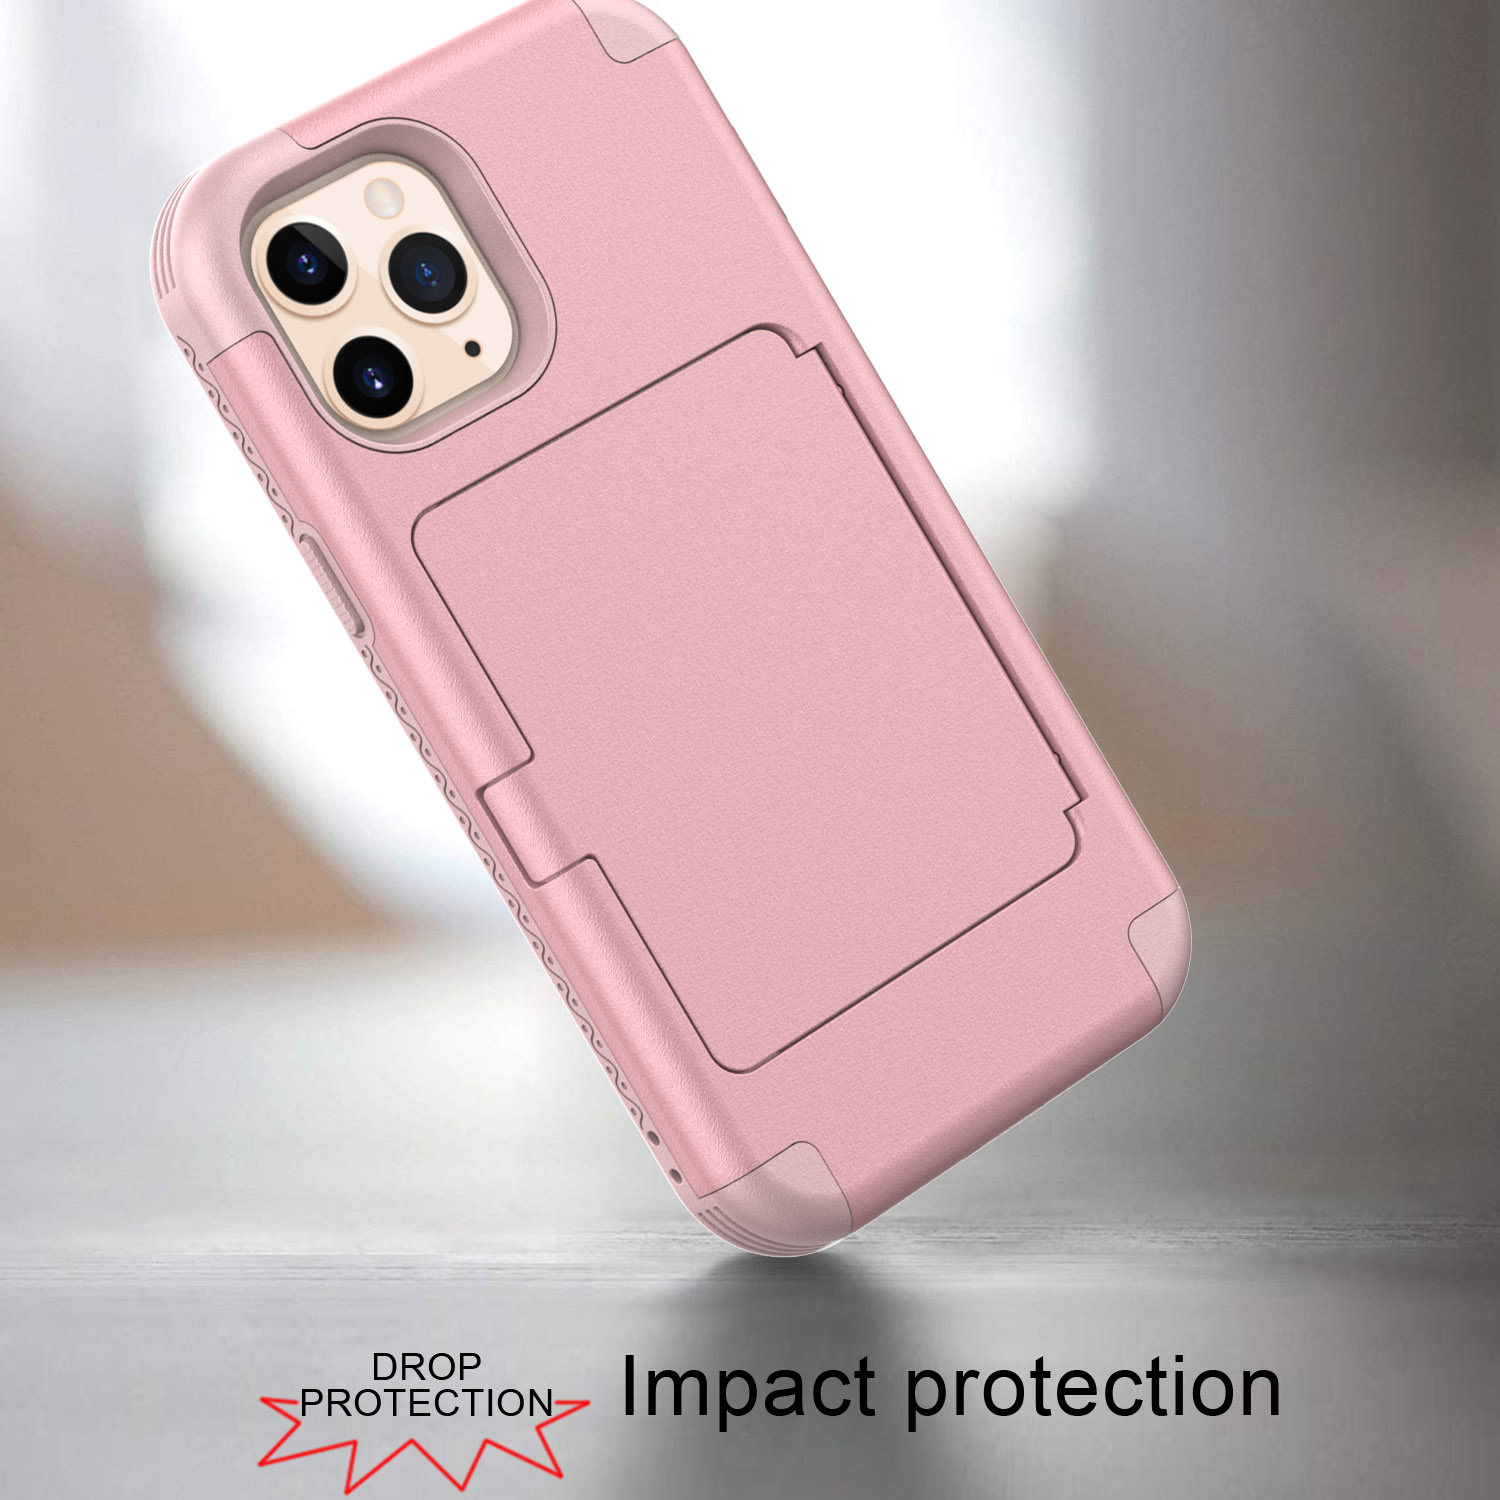 Luxury Make up Mirror Armor Case For iPhone 12 Mini 12 Pro MAX 11 Pro SE 2020 XS XR 8 7 6 Plus Wallet Card Slots Holder Cover enlarge